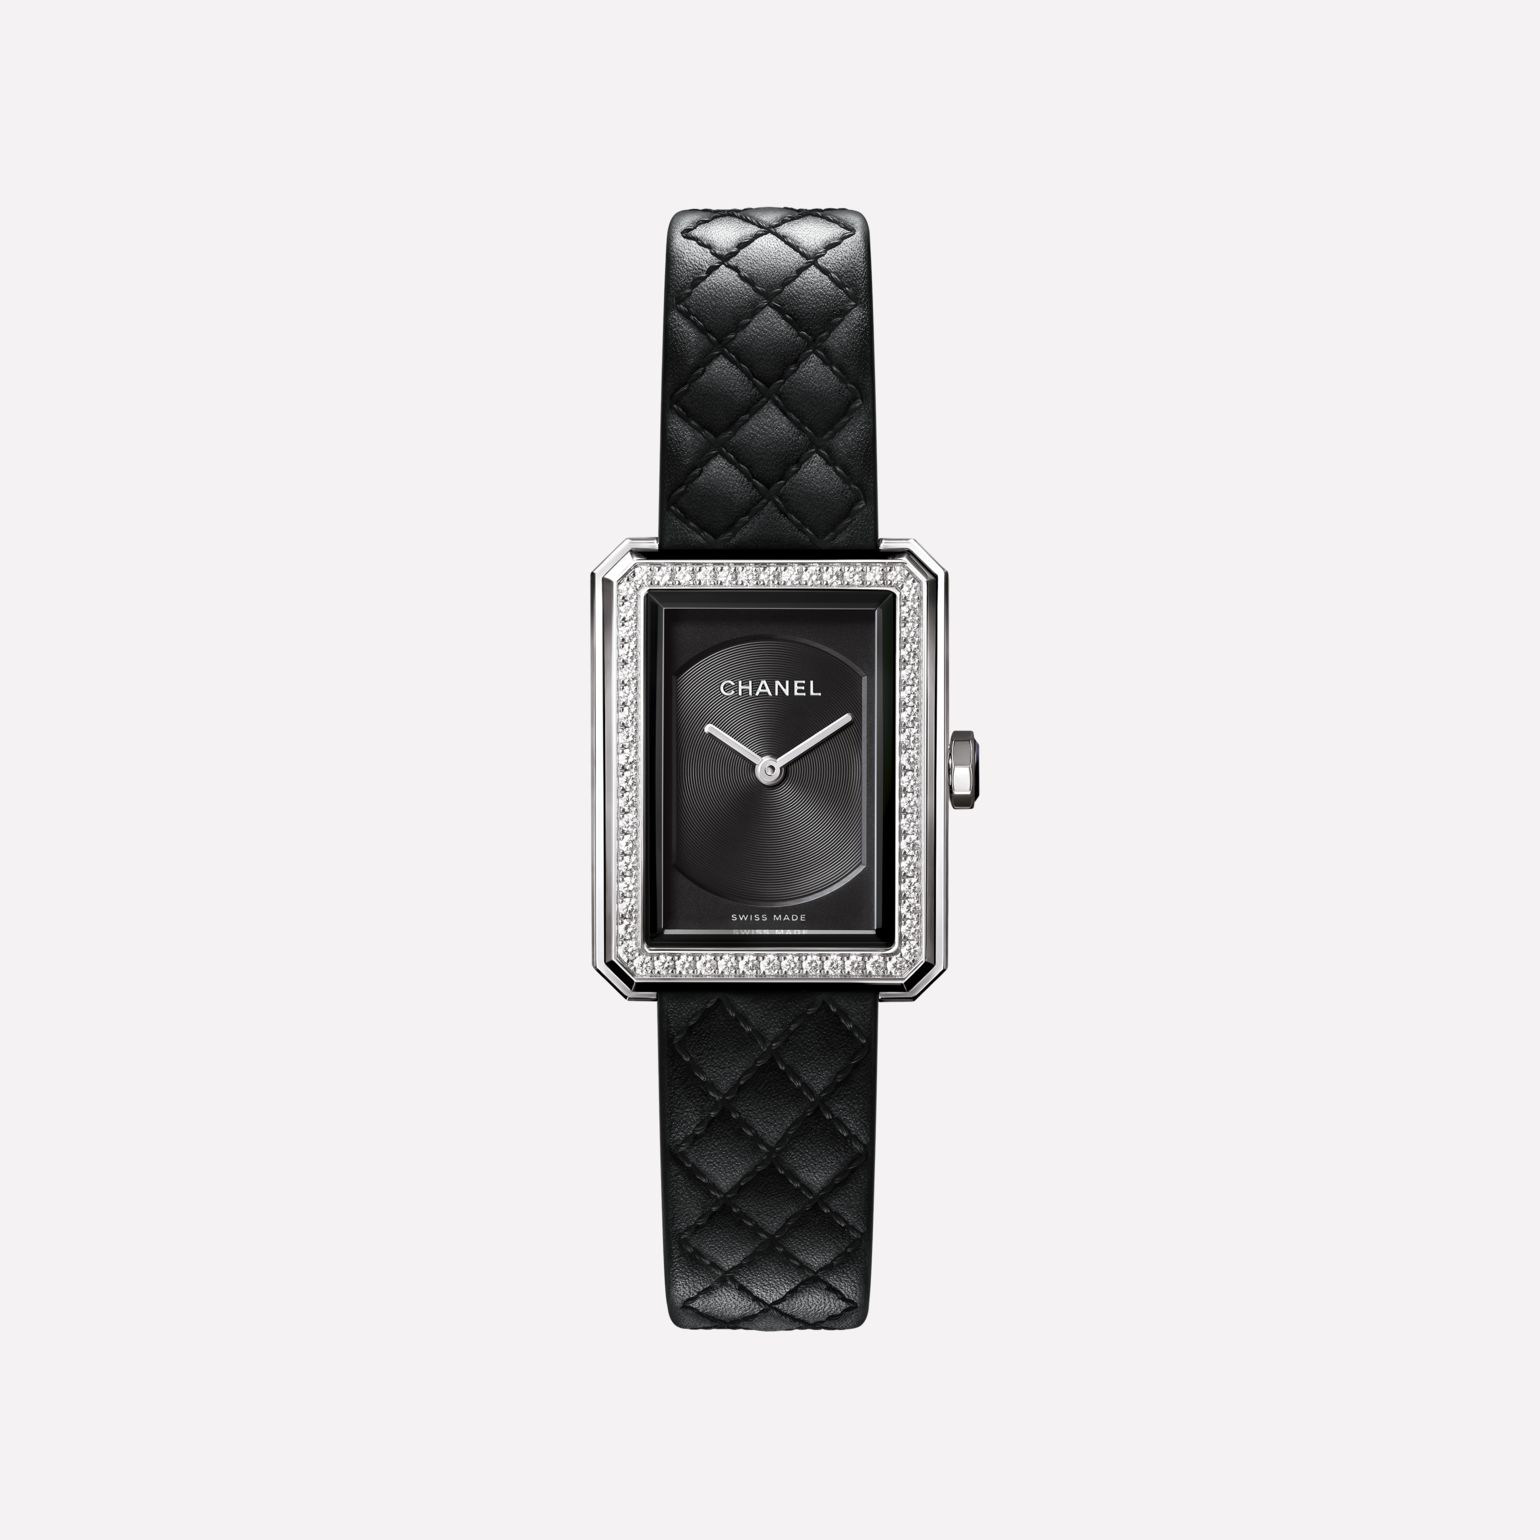 BOY·FRIEND Watch Small version, steel and diamonds, quilted pattern calfskin strap